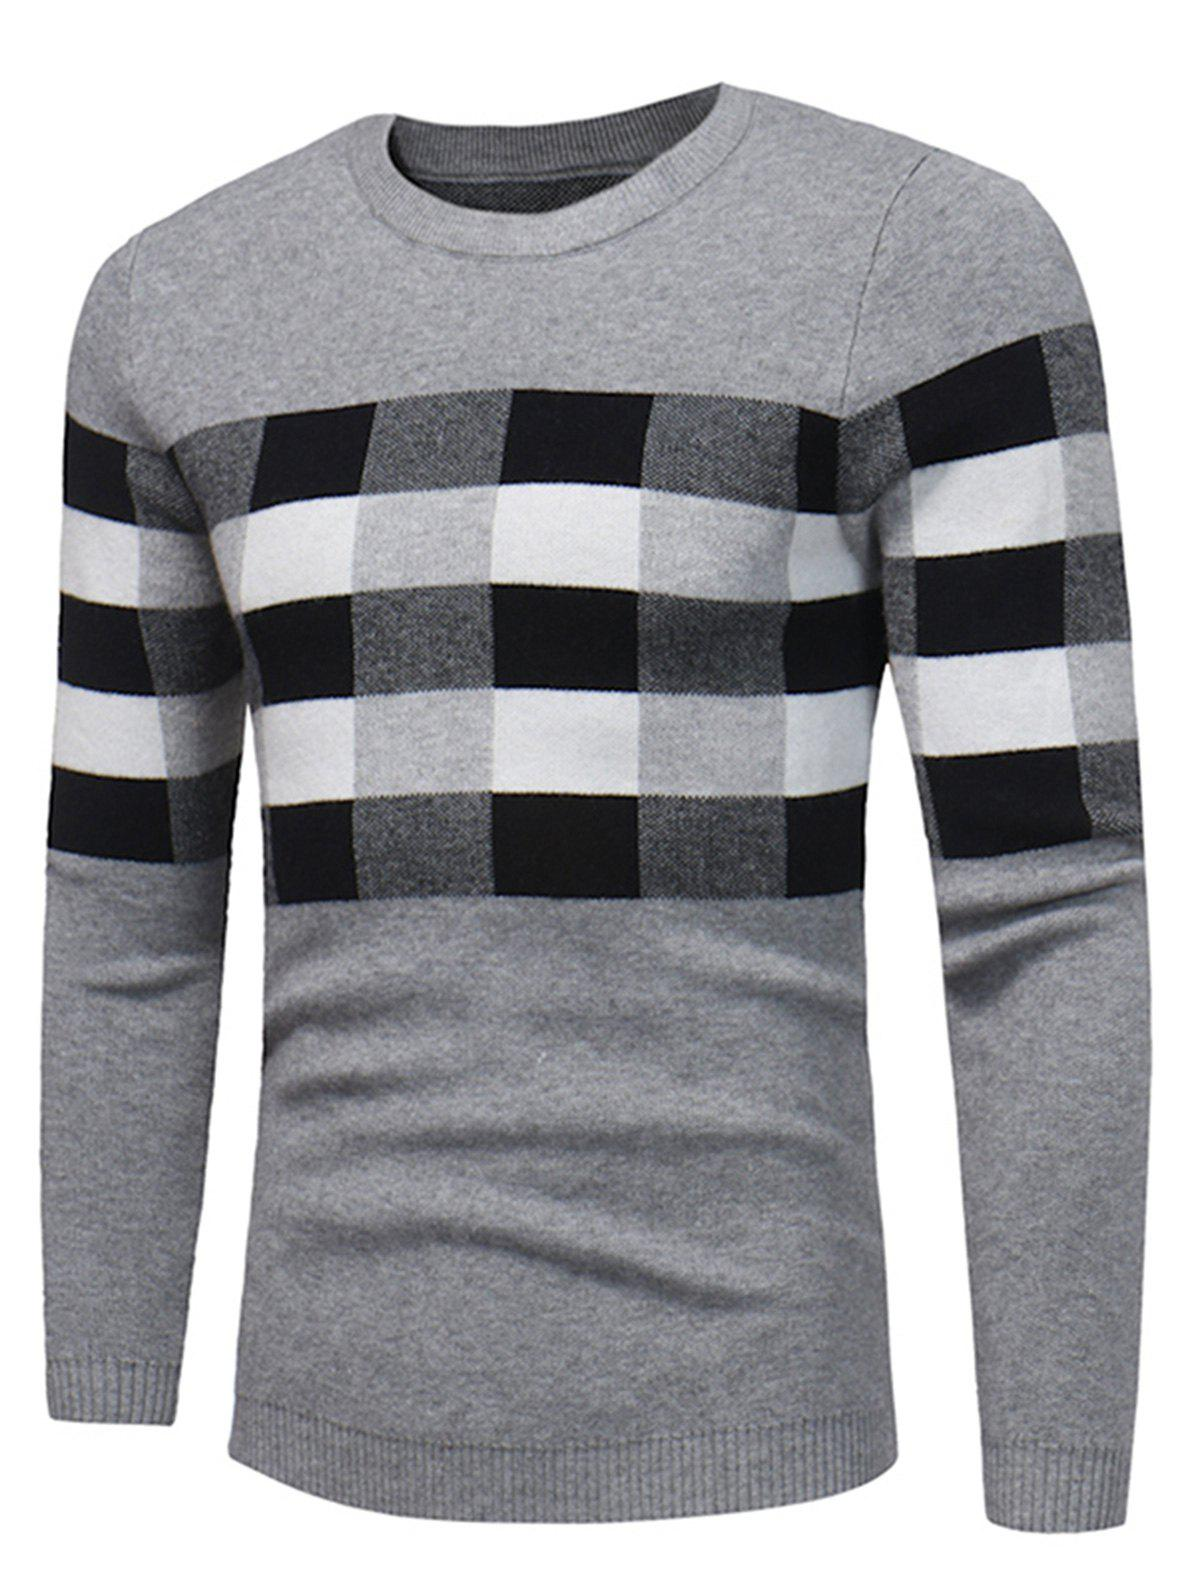 Plaid Color Block Pullover Sweater - GRAY L